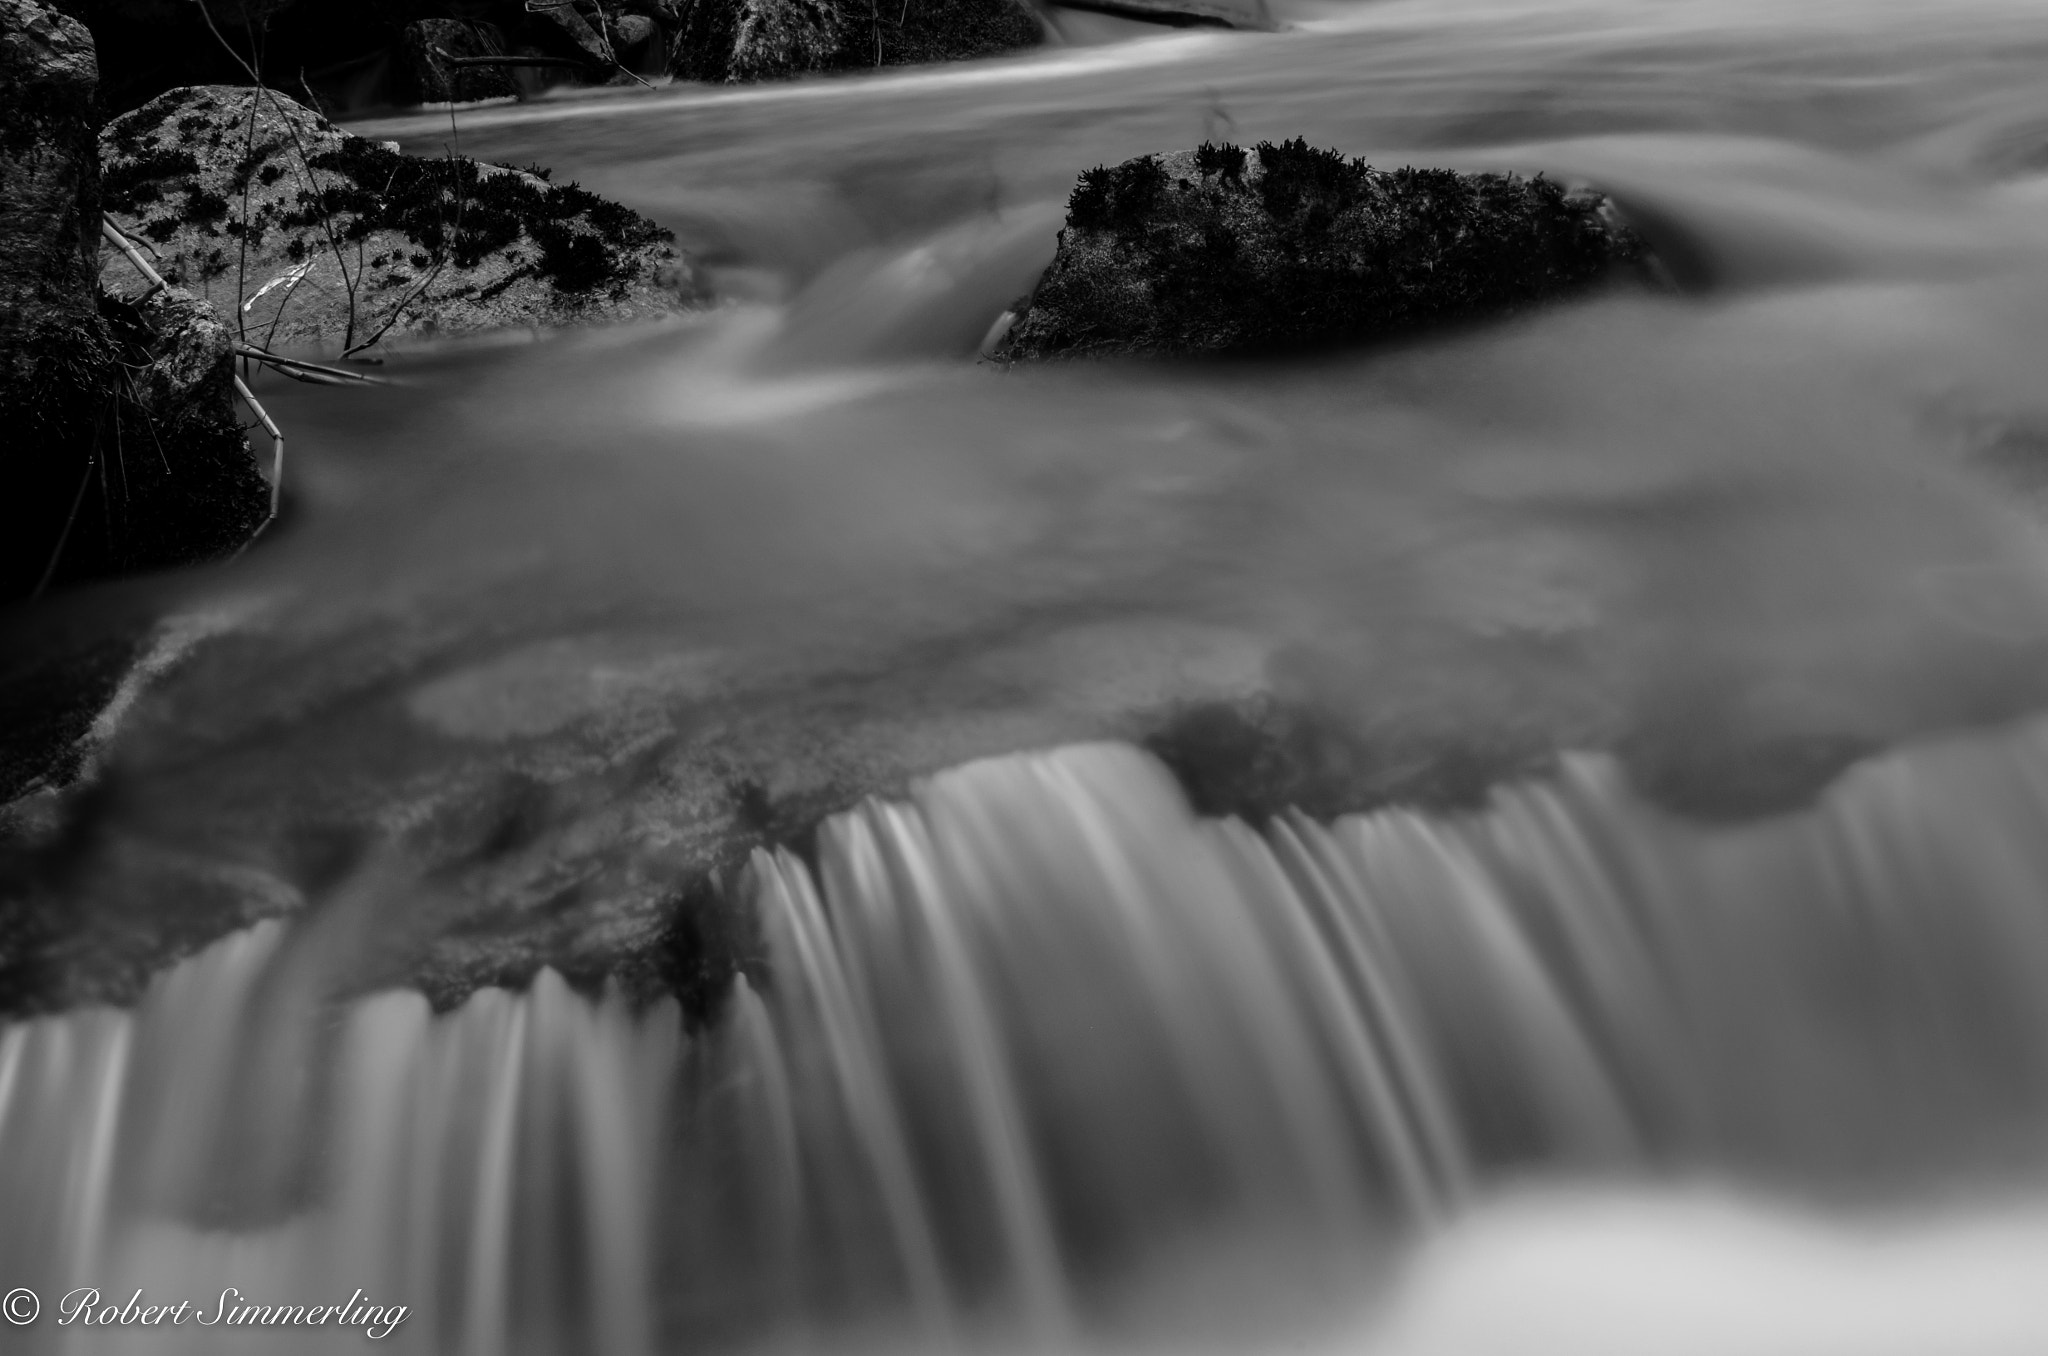 Photograph Flowing Creek #1 by Robert Simmerling on 500px